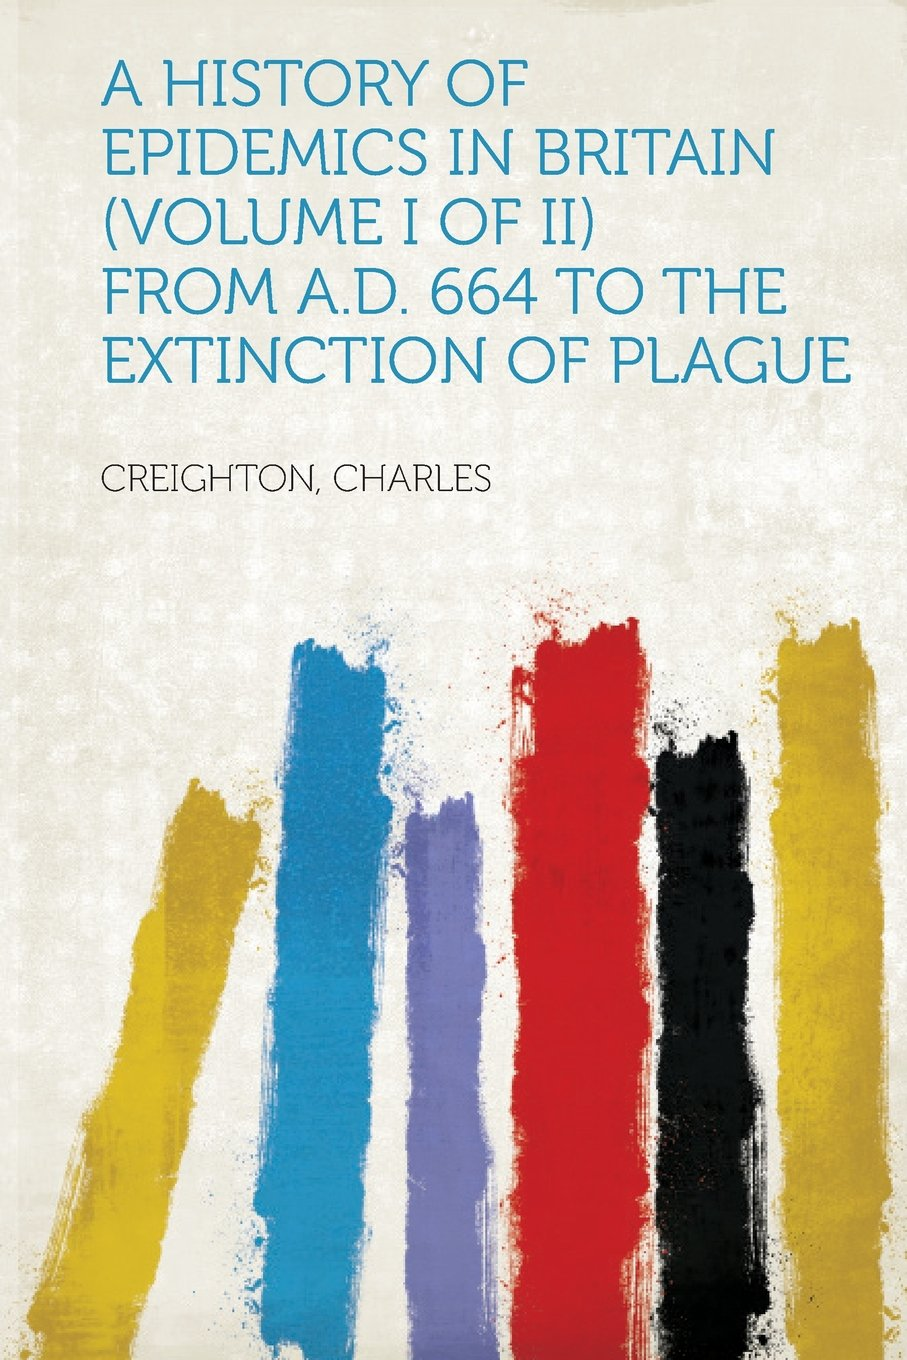 A History of Epidemics in Britain (Volume I of II) from A.D. 664 to the Extinction of Plague PDF